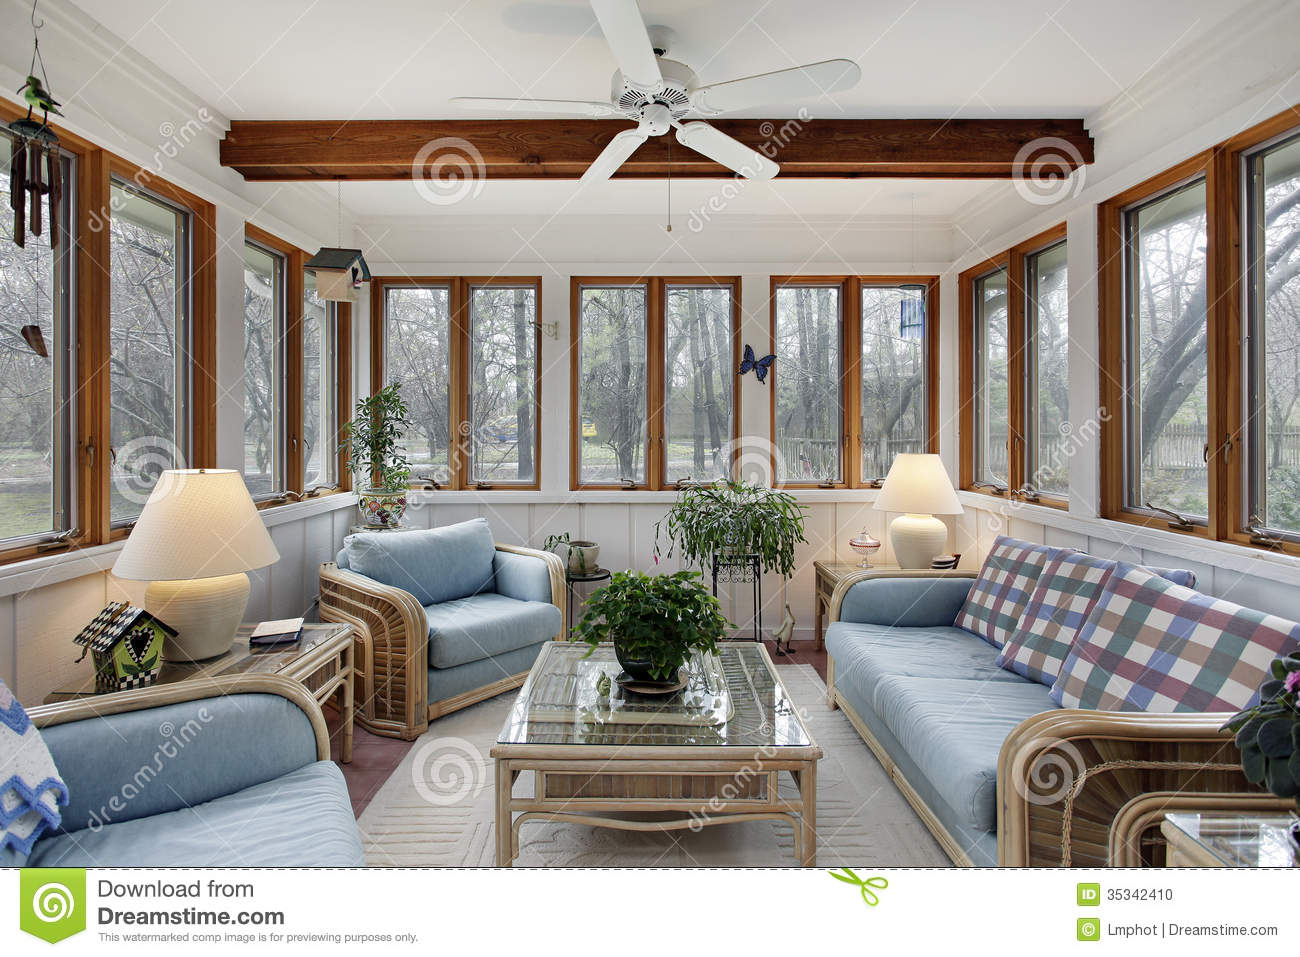 Zebra decor living room - Sunroom With Wood Ceiling Beam Stock Photo Image 35342410